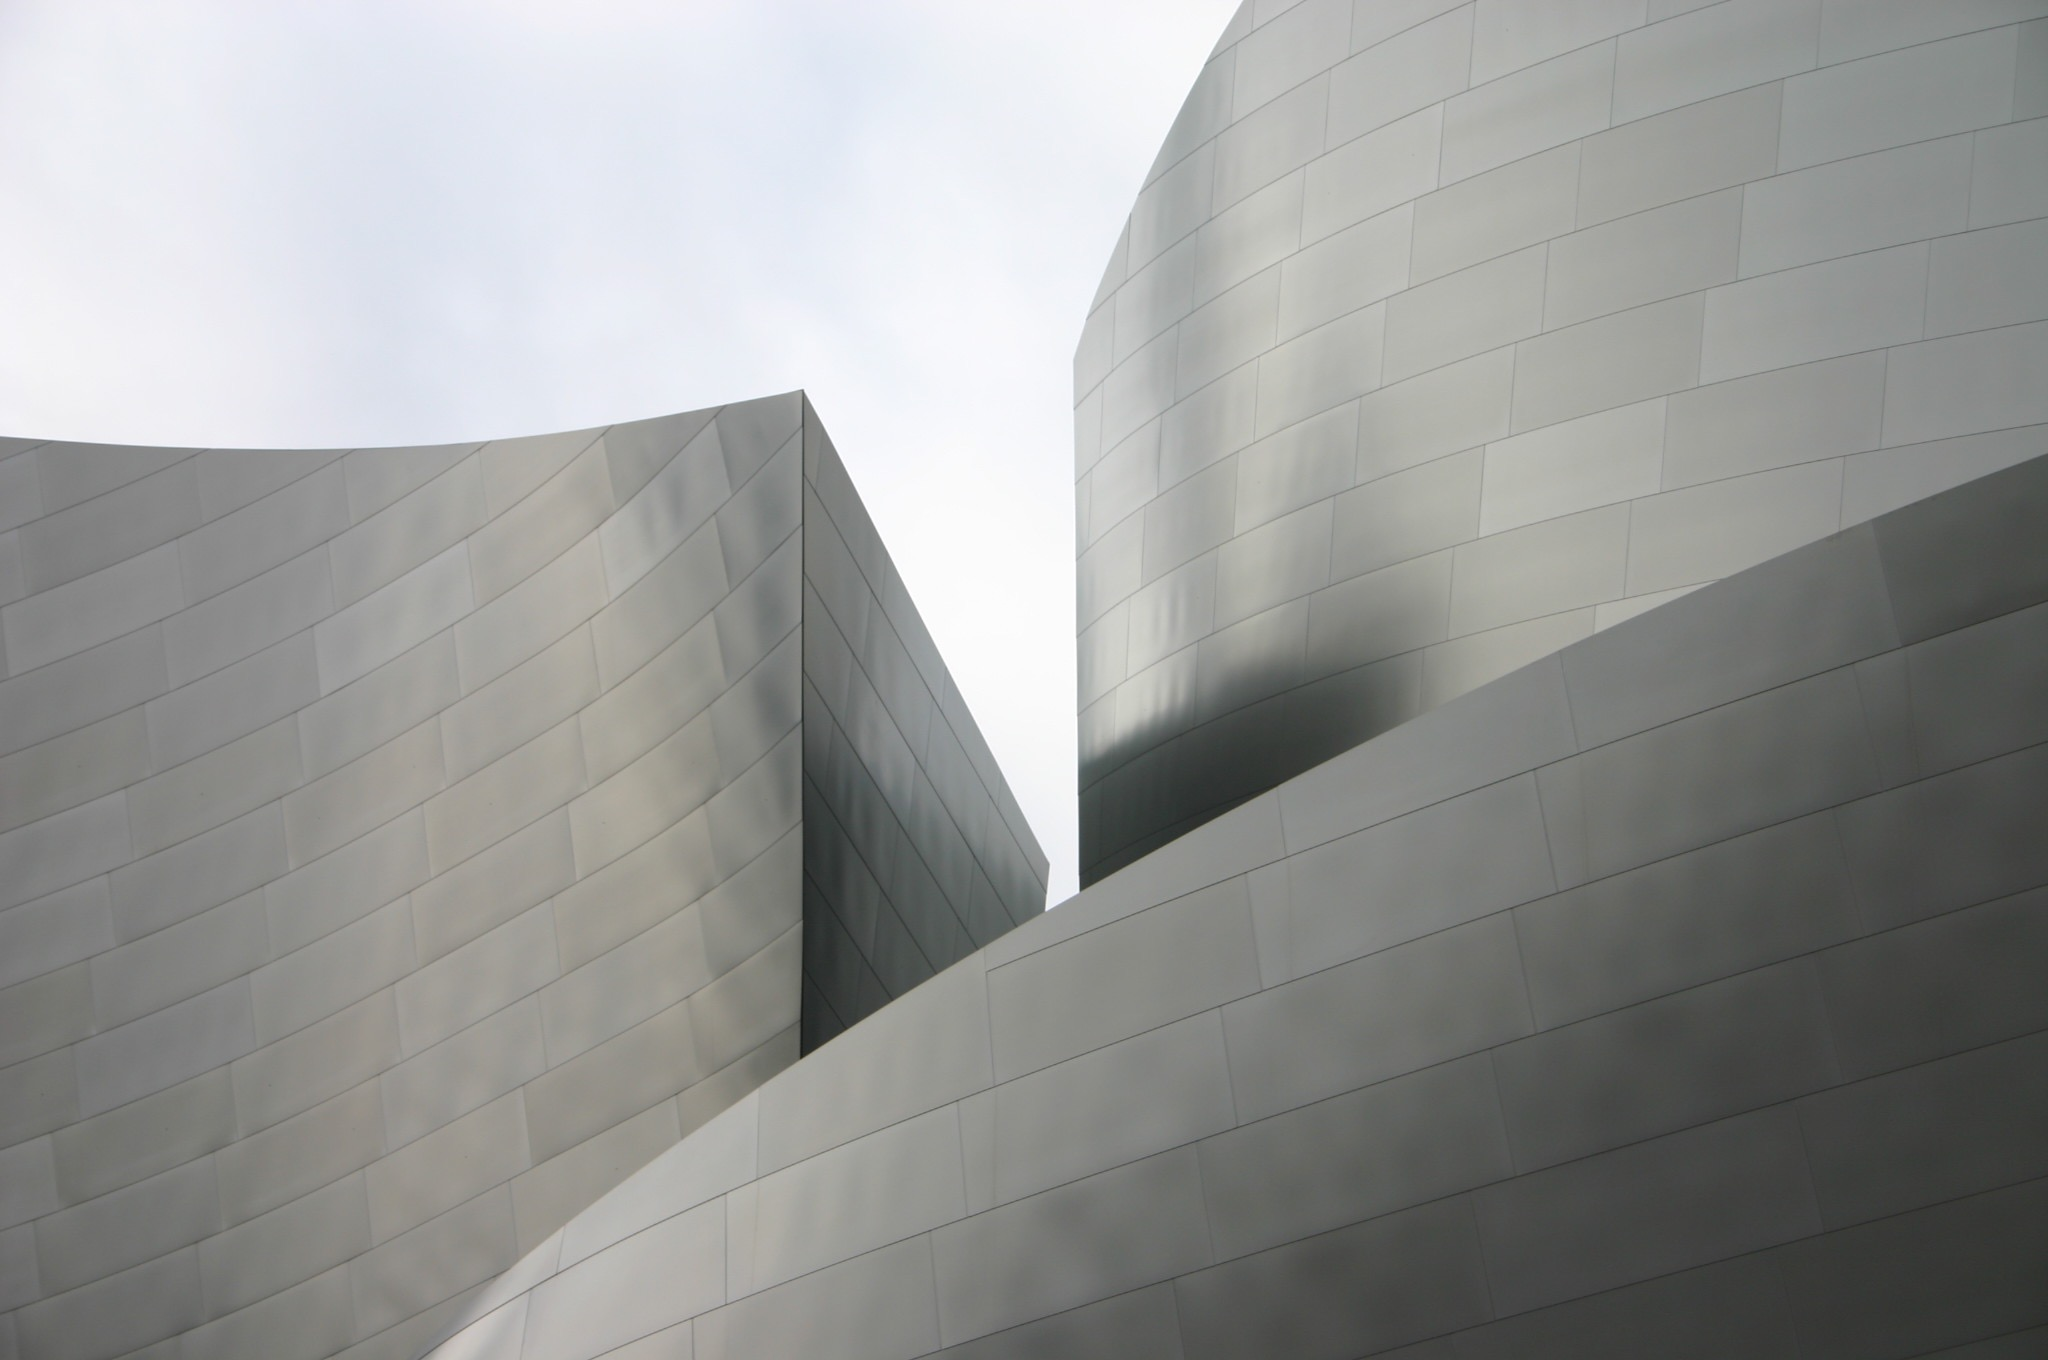 Disney Concert Hall, downtown LA. I took about 100 photos, but this abstracted fragment is my favorite.